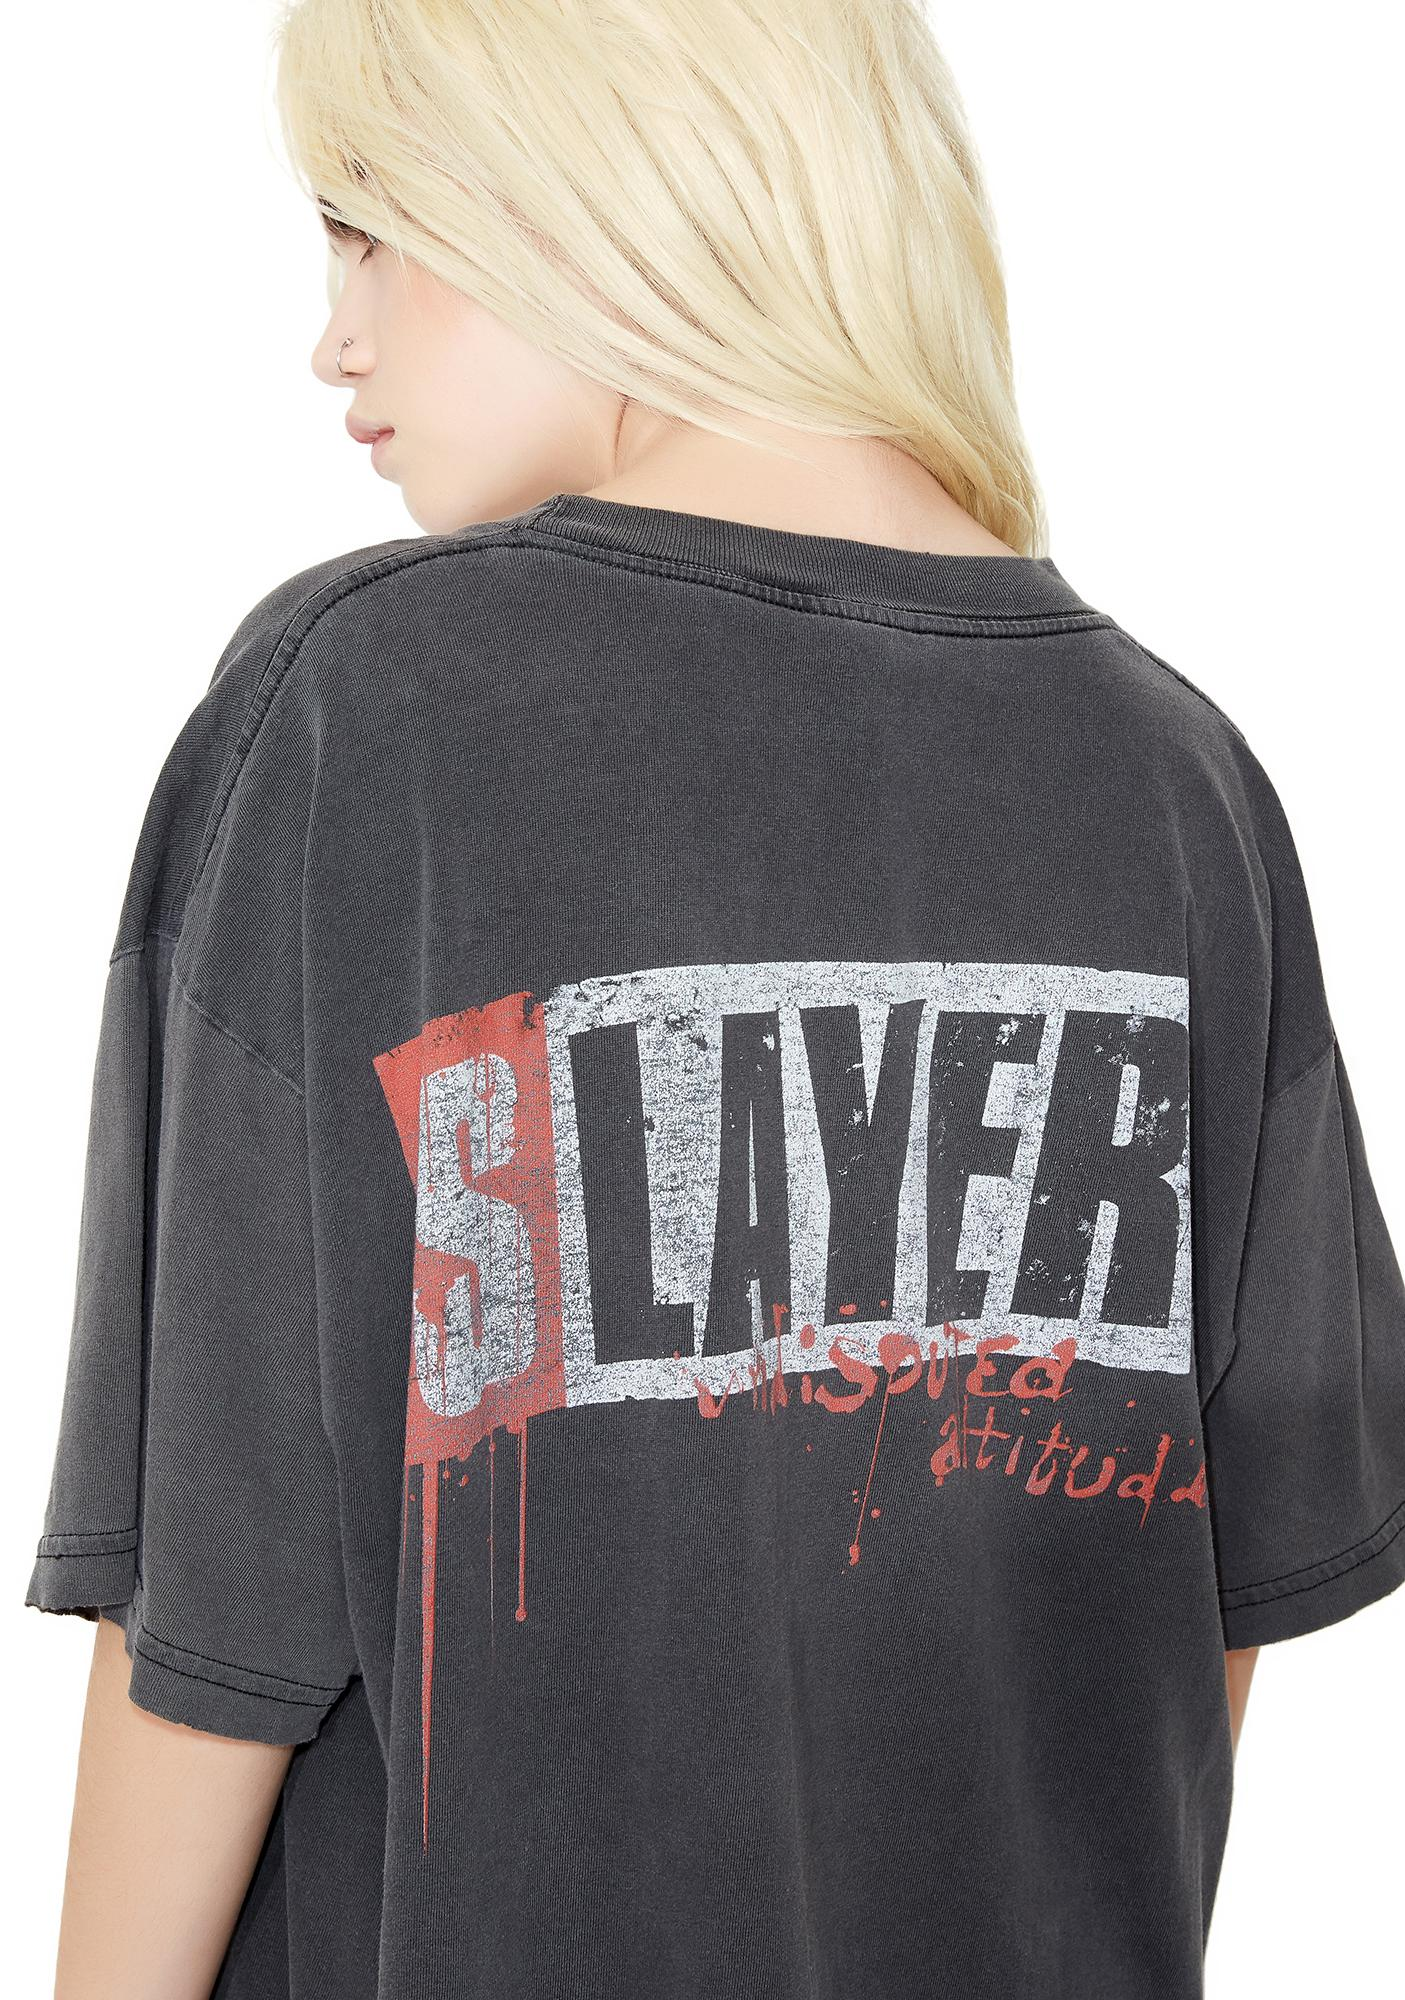 Vintage Slayer '96 Undisputed Metal Tee